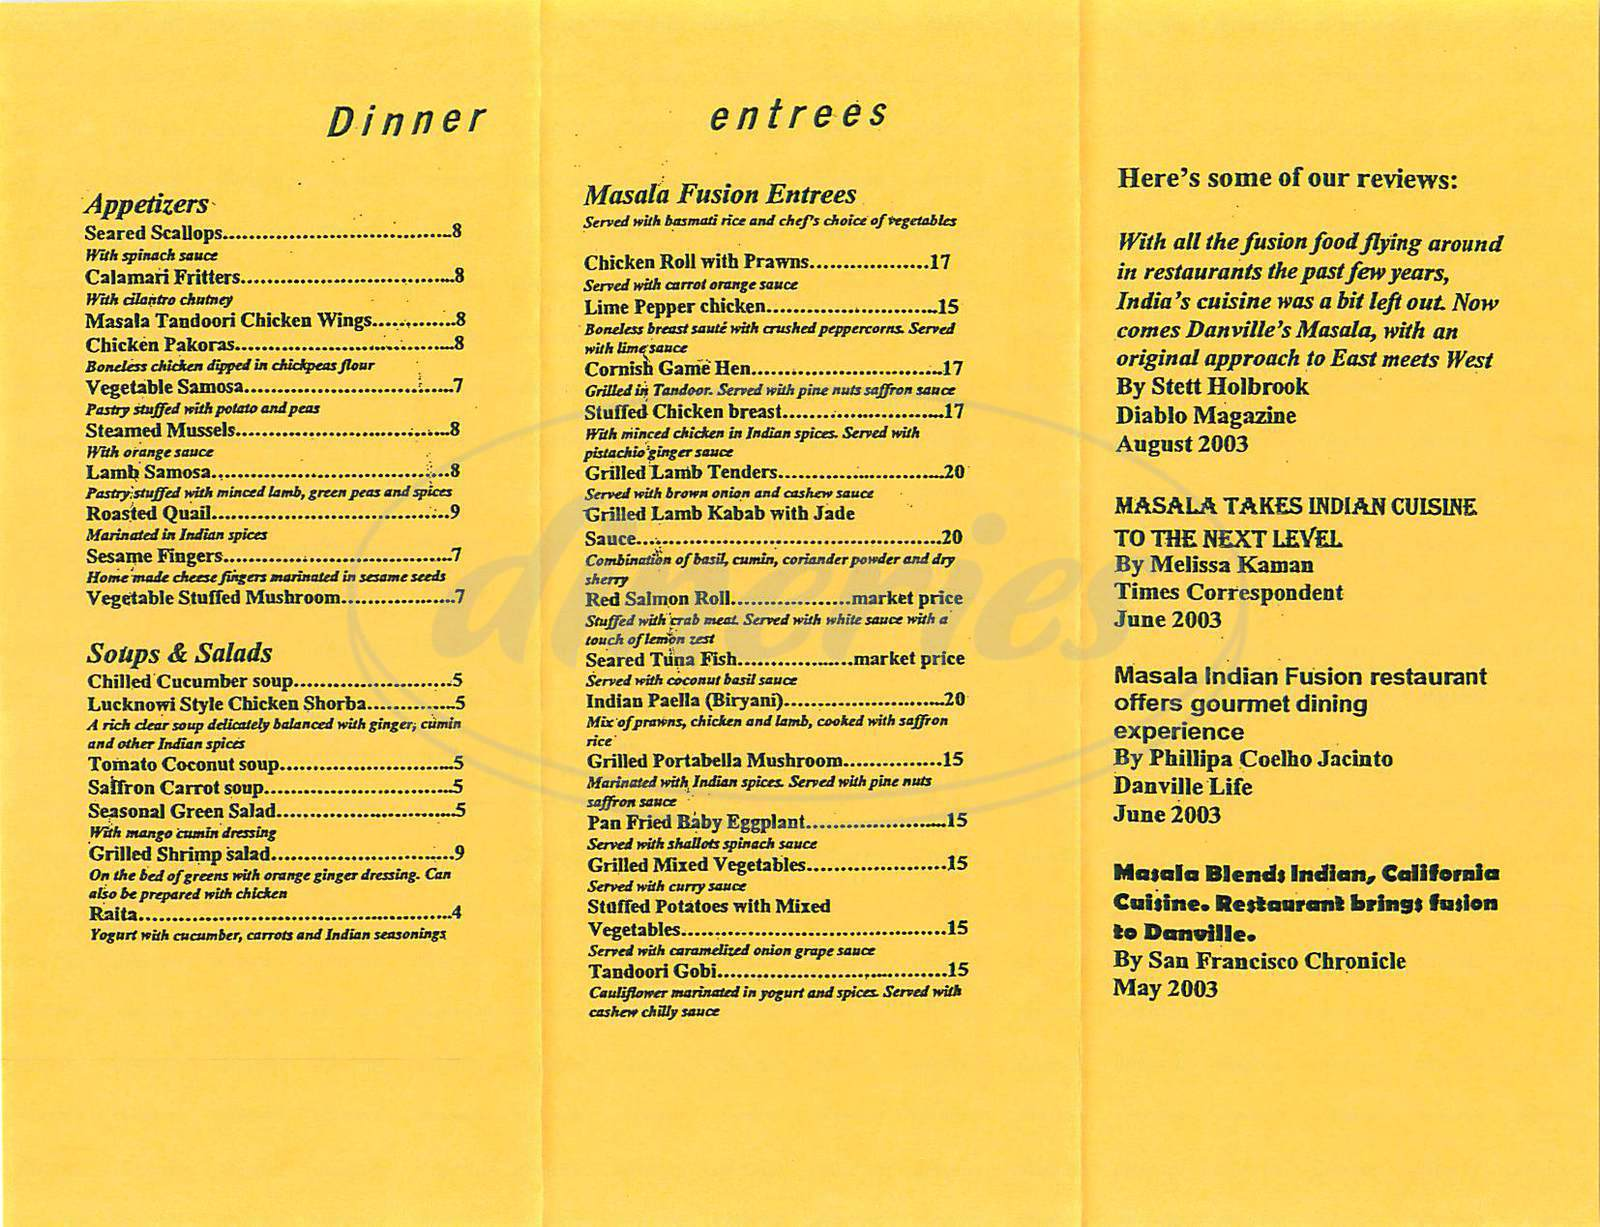 menu for Masala Indian Fusion